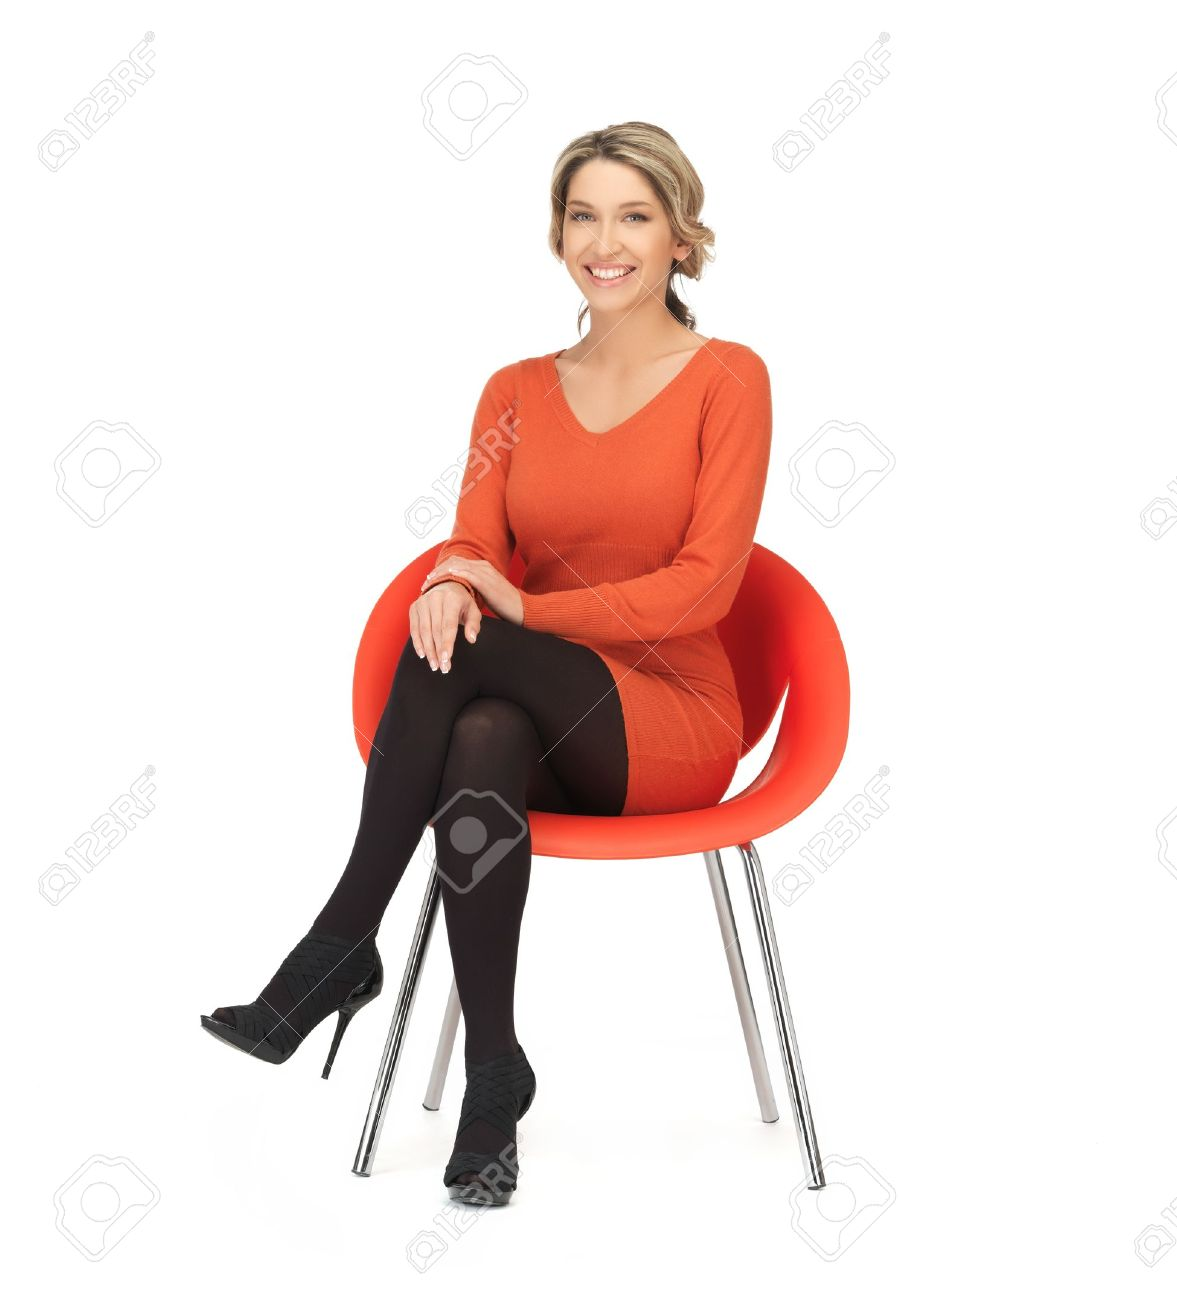 Stock Photo Nice Woman In Dress Sitting In Chair